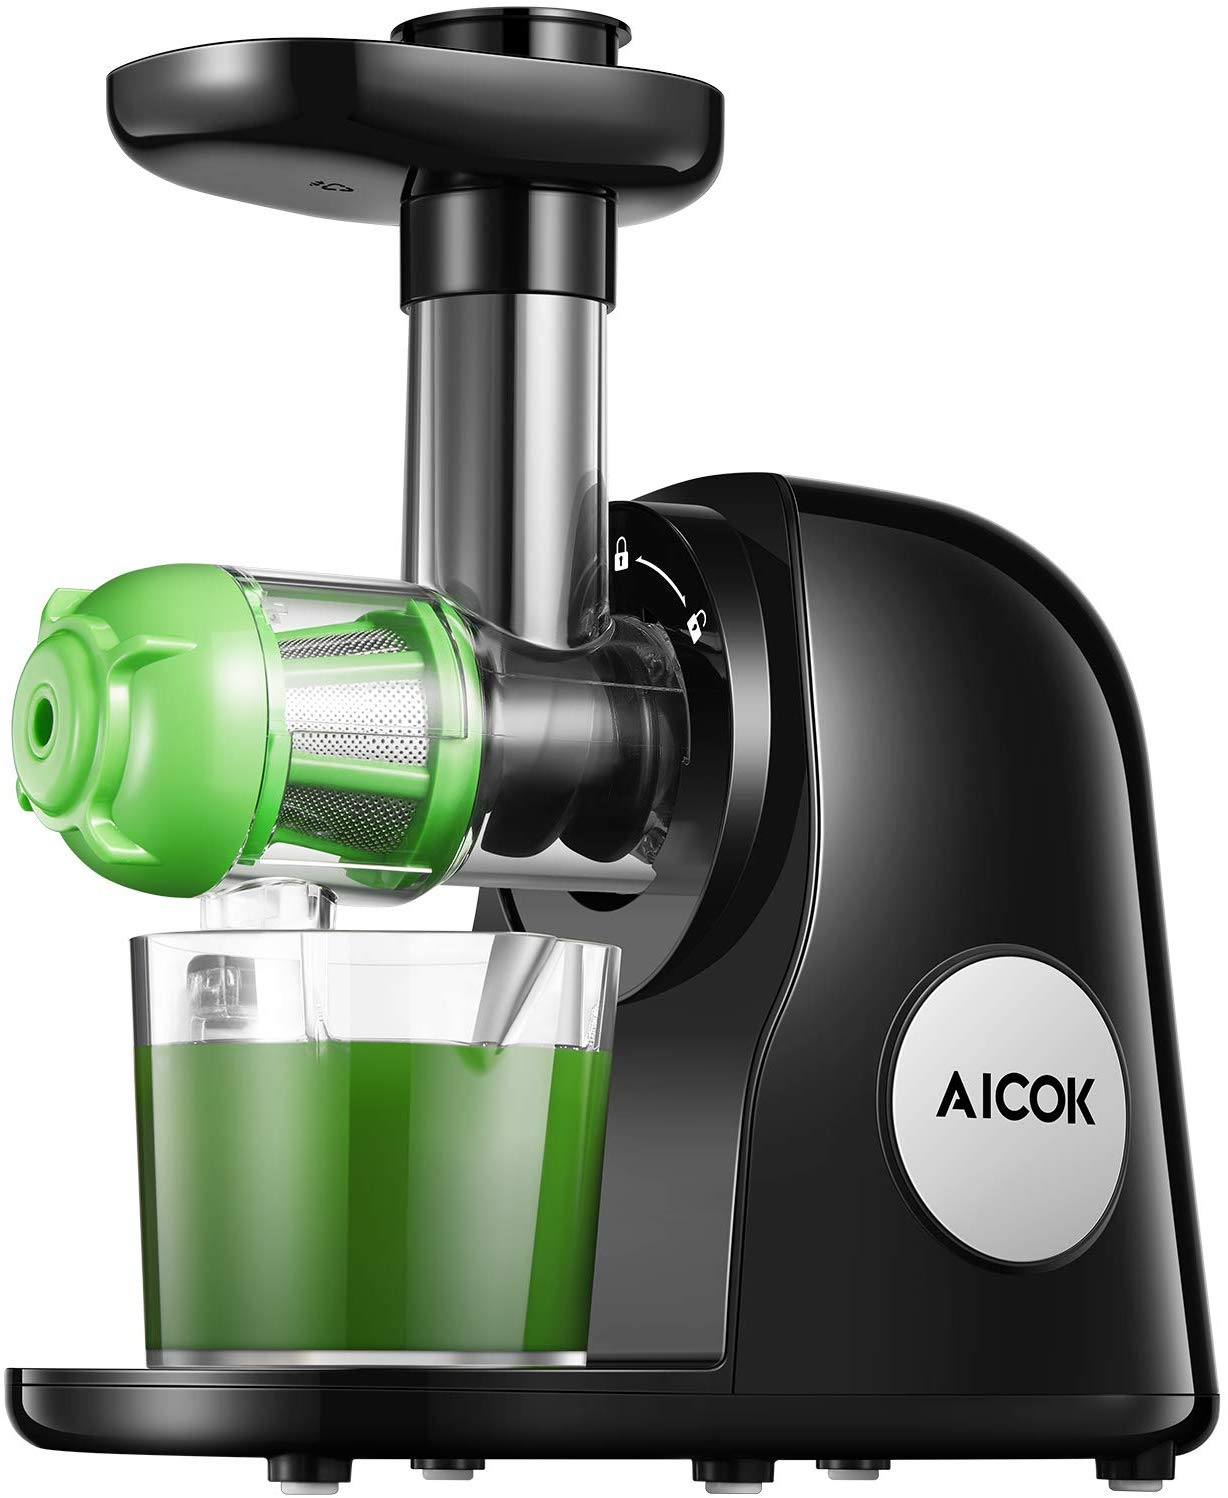 Aicok Slow Masticating Juicer Extractor Easy to Clean